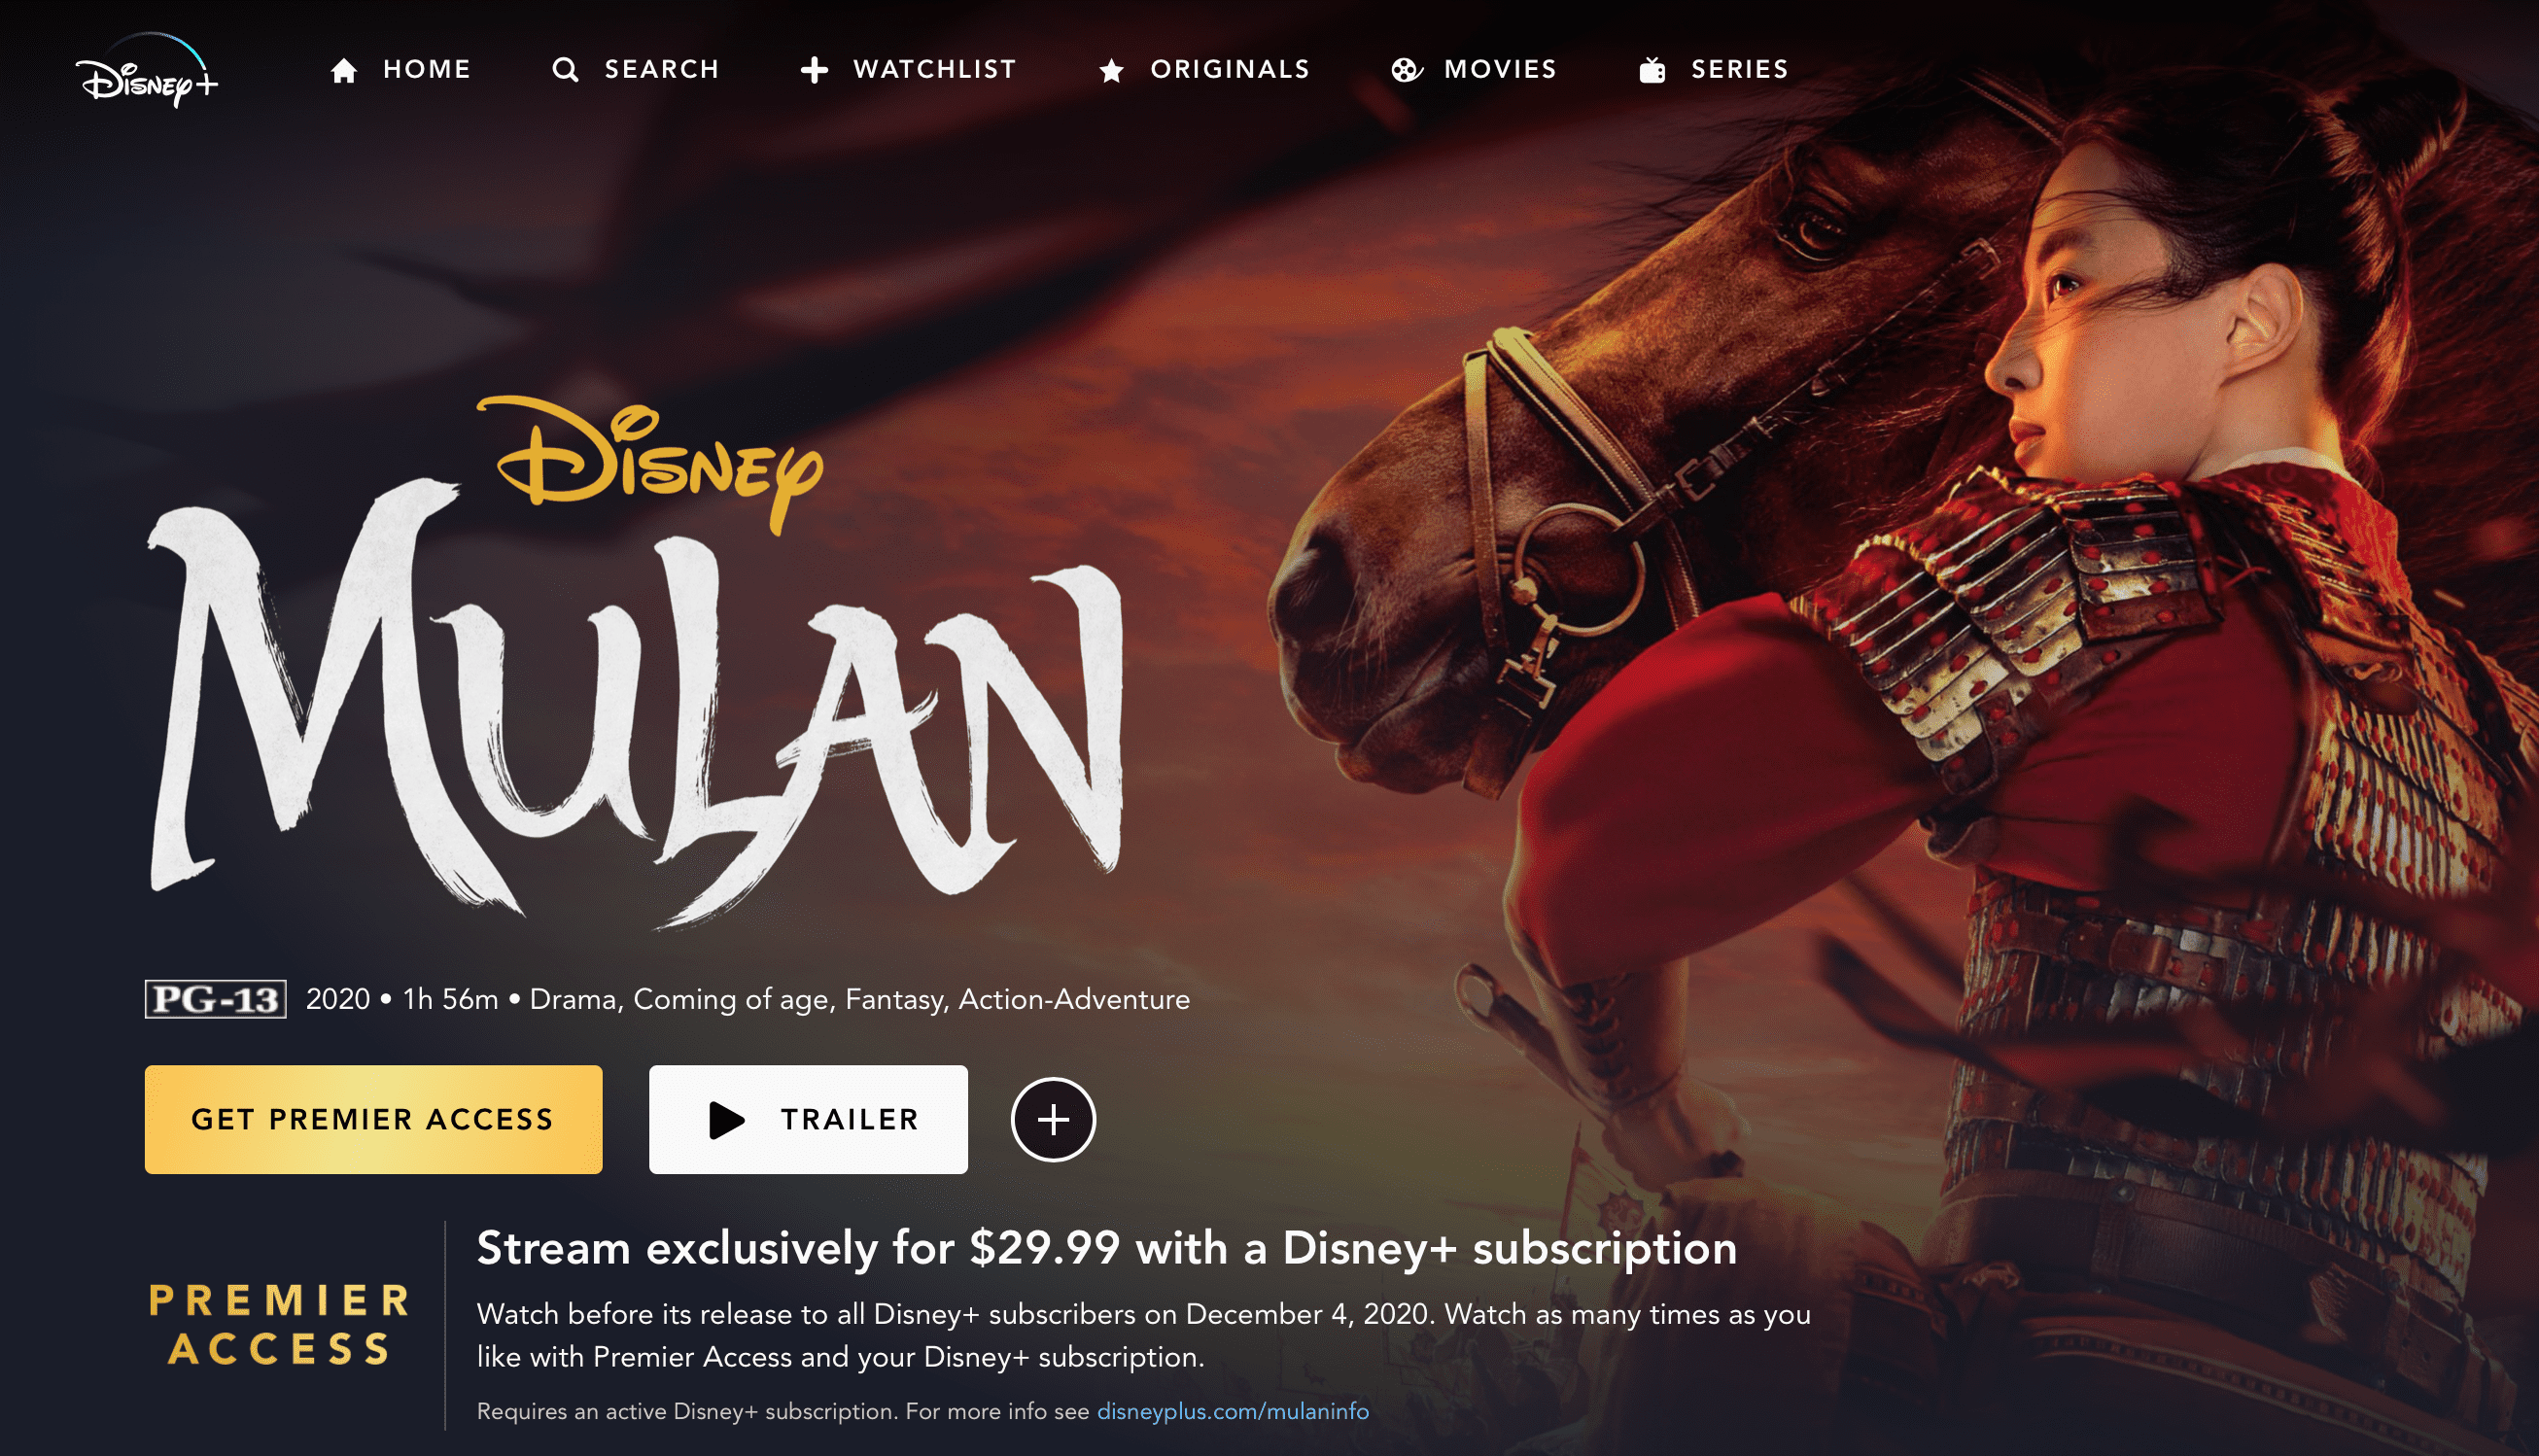 What time does Mulan come out on Disney Plus?